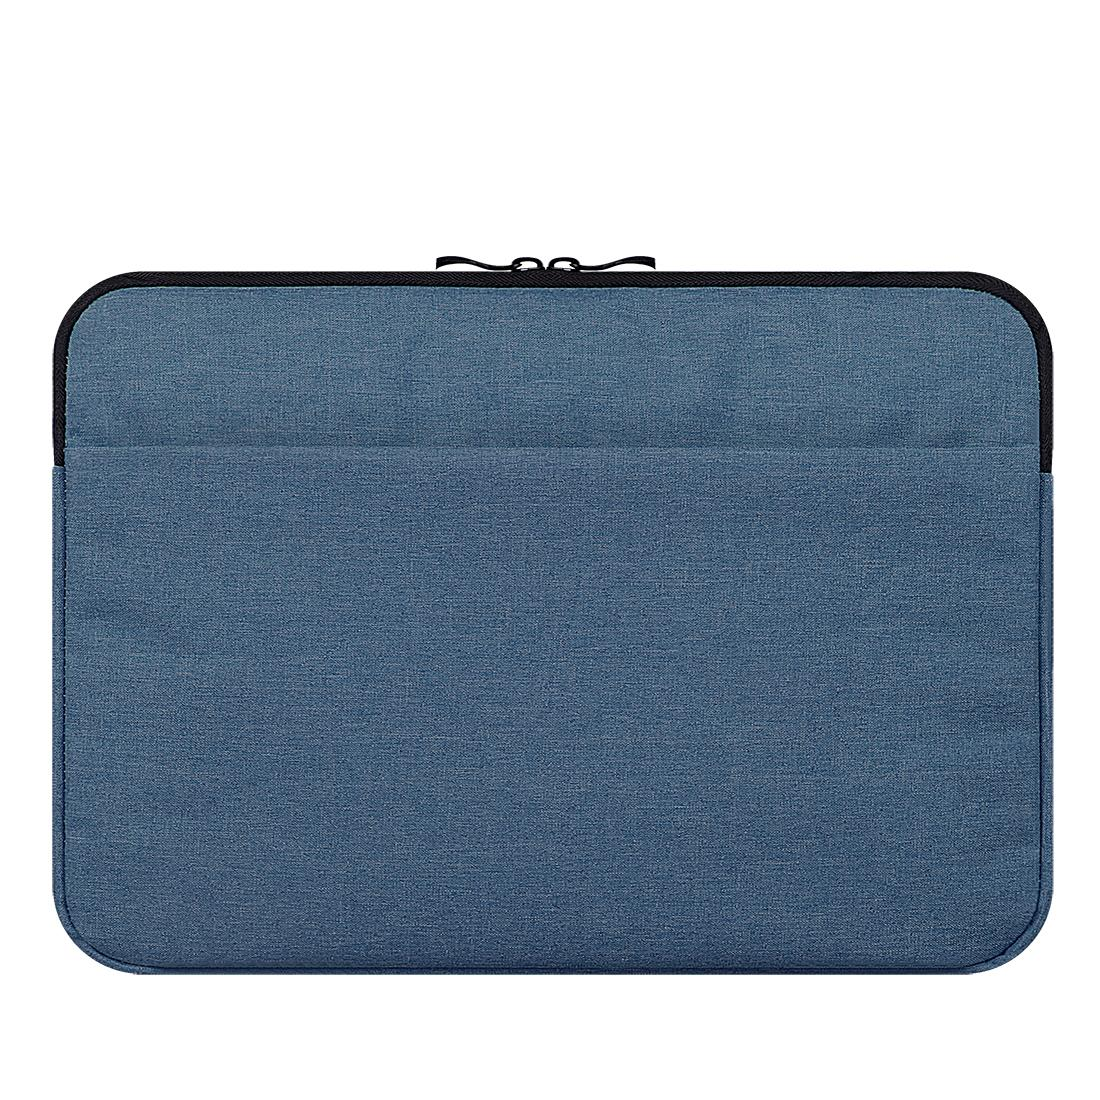 da7848220b cT 15.6INCH V1 Thick inner padding laptop sleeve cover MacBook Asus Dell water  resistant laptop